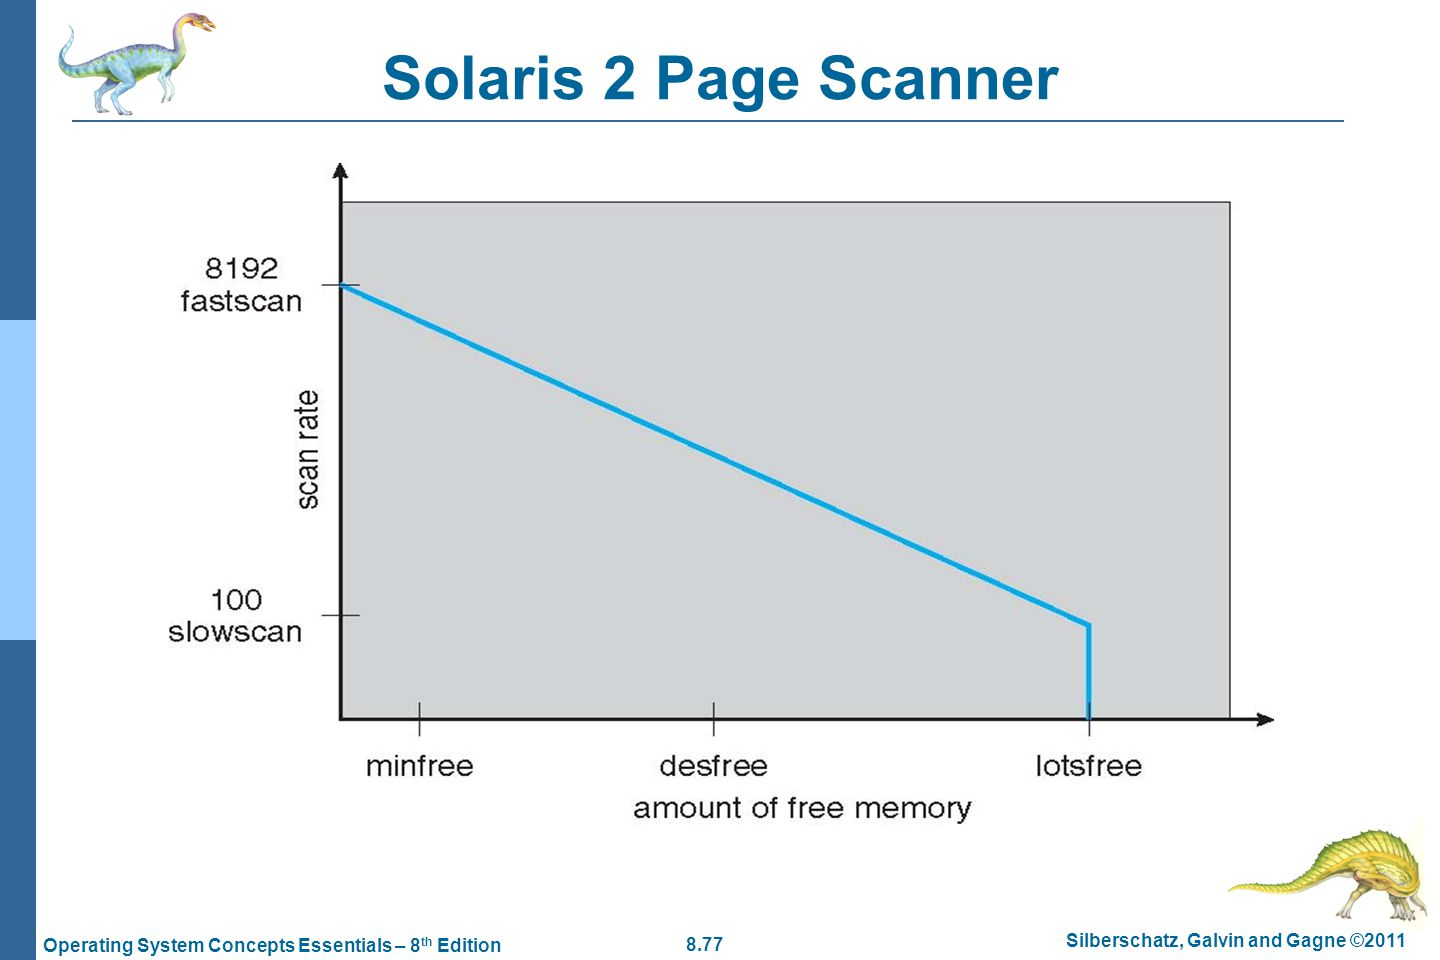 Solaris 2 Page Scanner